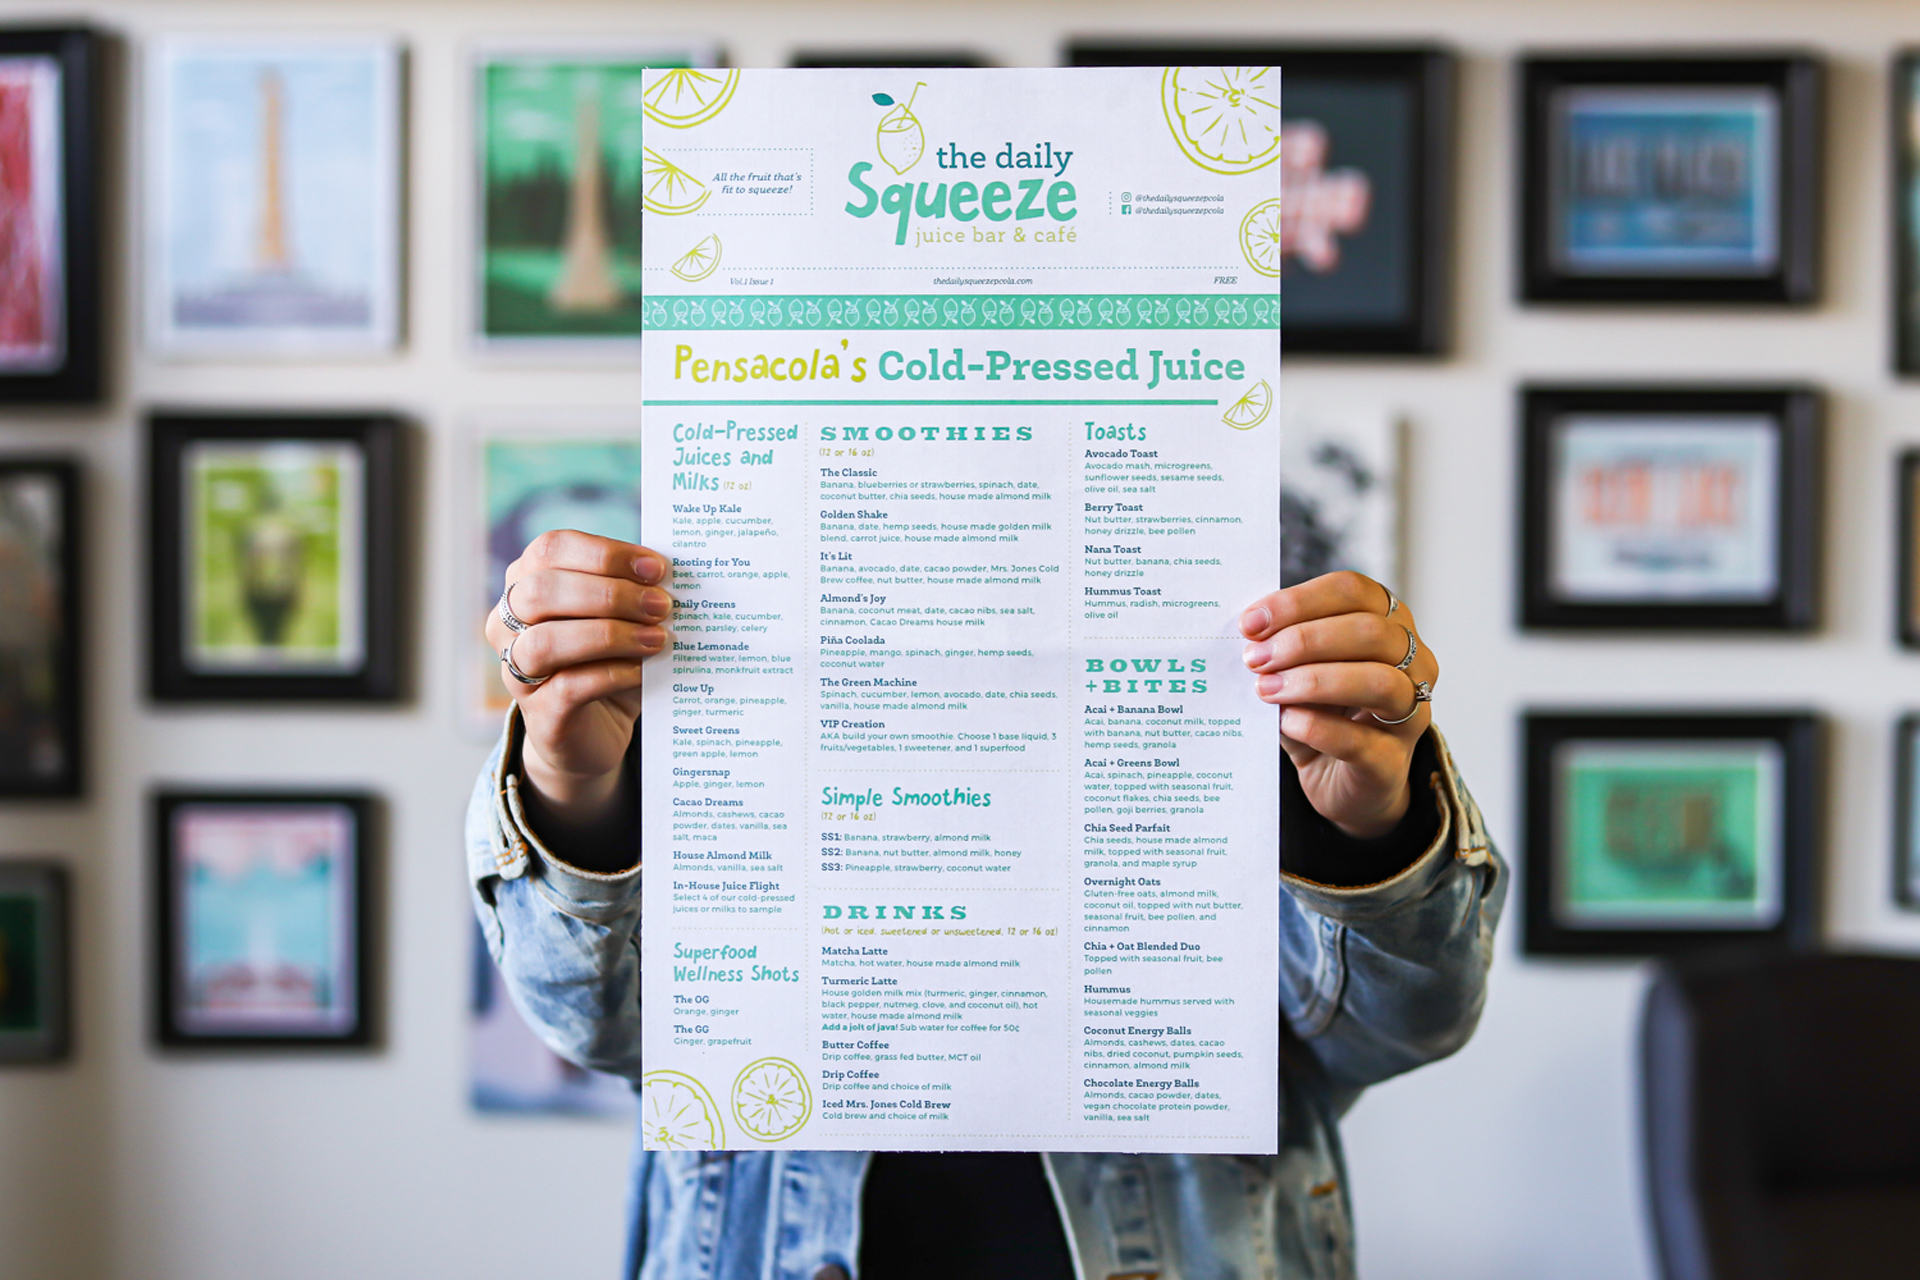 Extra! Extra! - With a design and layout that alludes to a daily newspaper, this menu is a great blend of structure and fun.